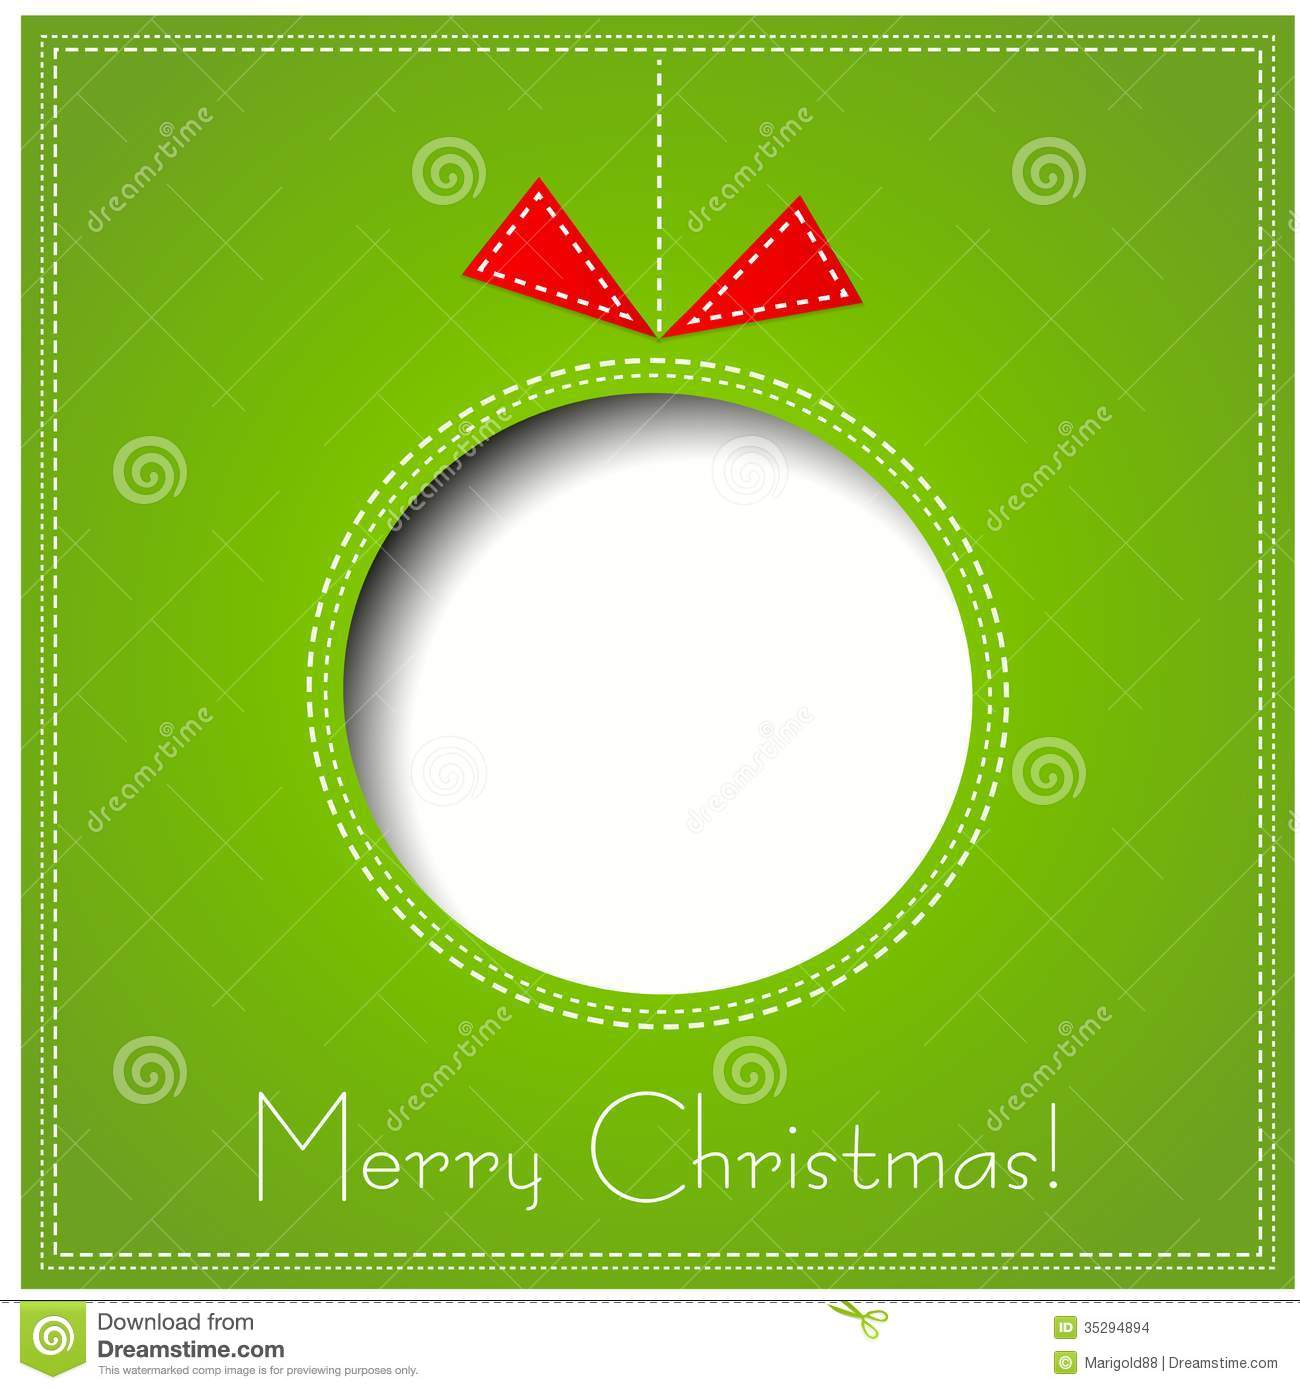 Greeting Card Merry Christmas Stock: Merry Christmas Paper Greeting Card Stock Vector